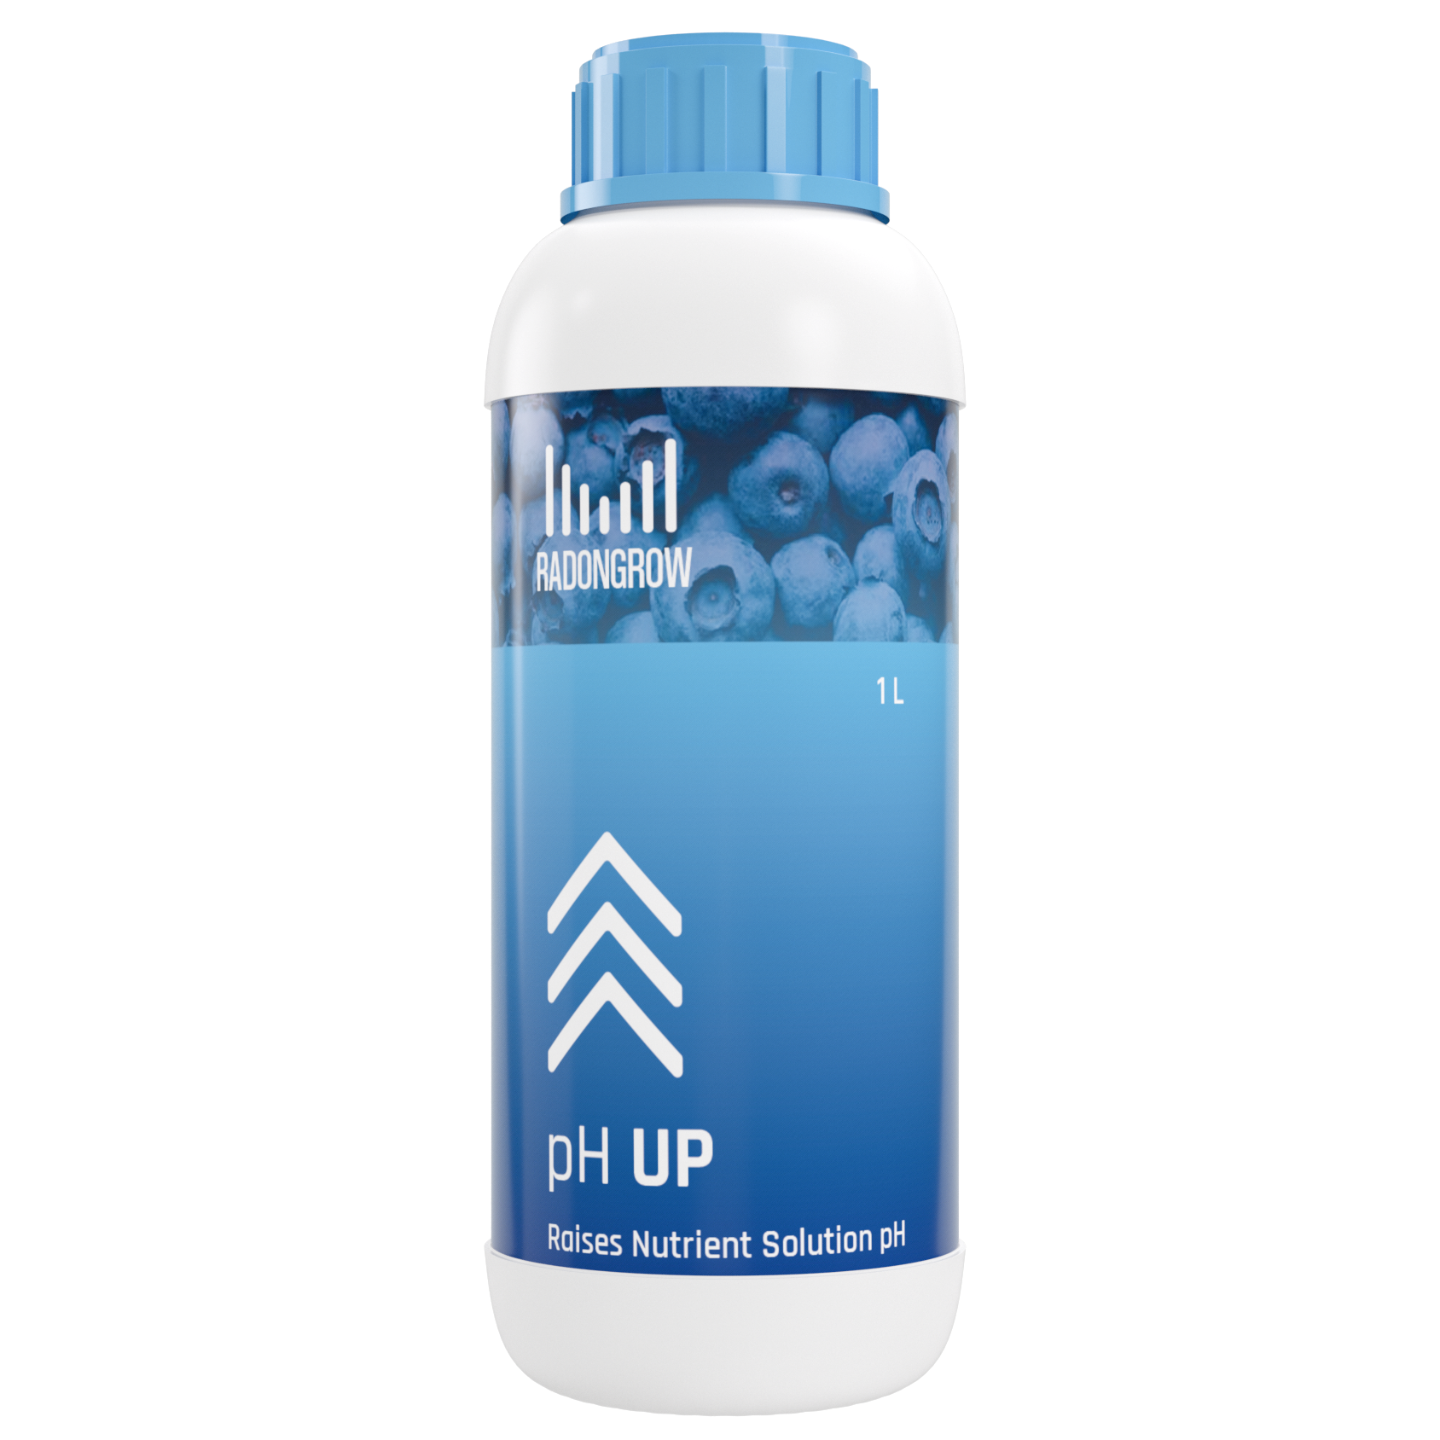 Radongrow ph UP 1000 ml